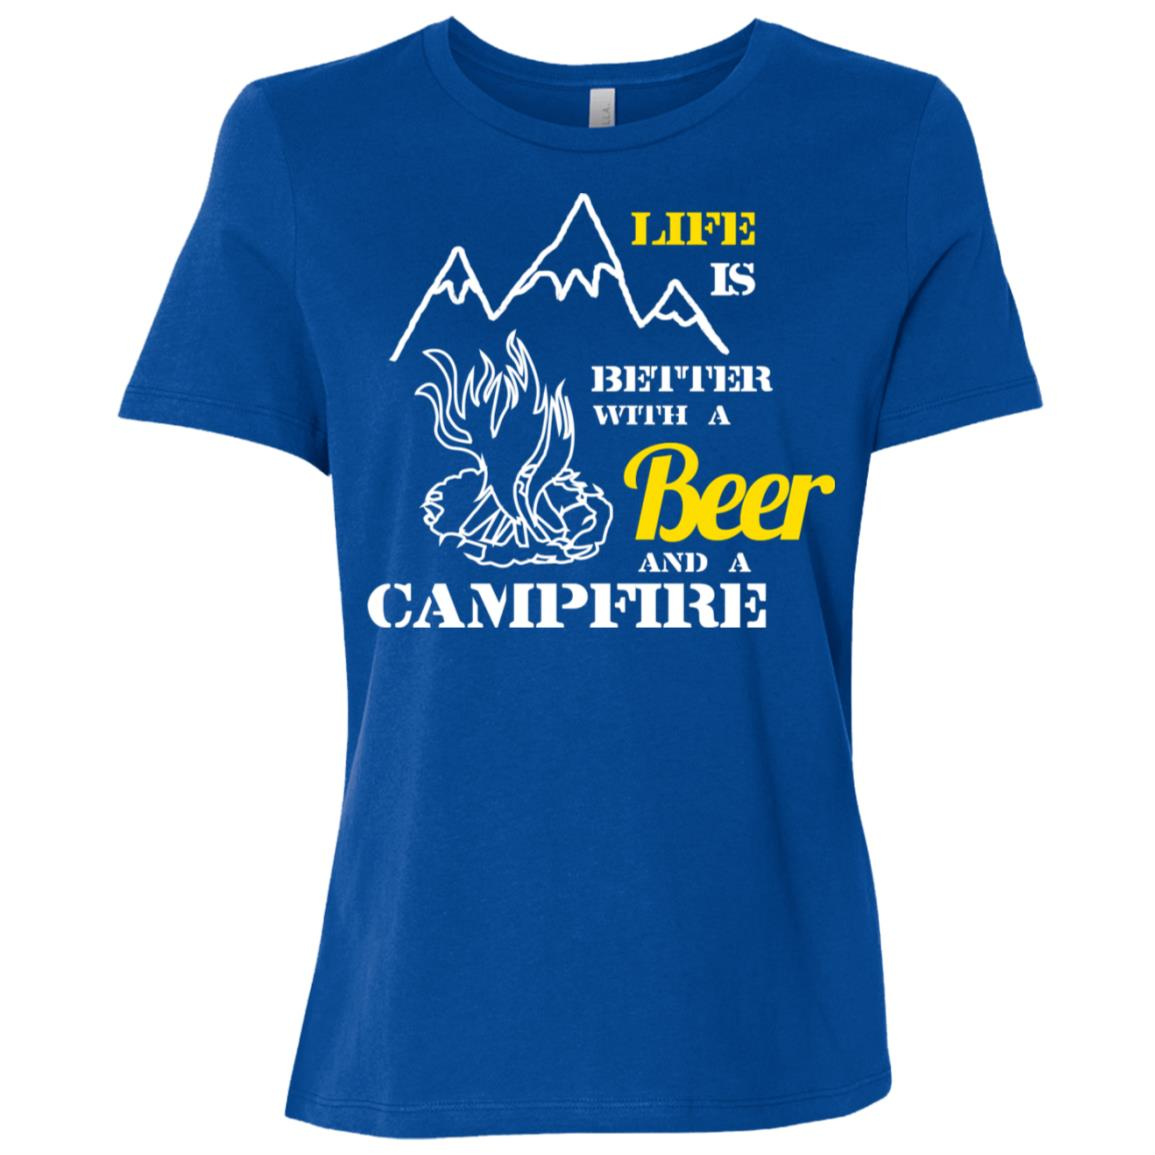 Life Is Better With Beer & Campfire Camping Women Short Sleeve T-Shirt